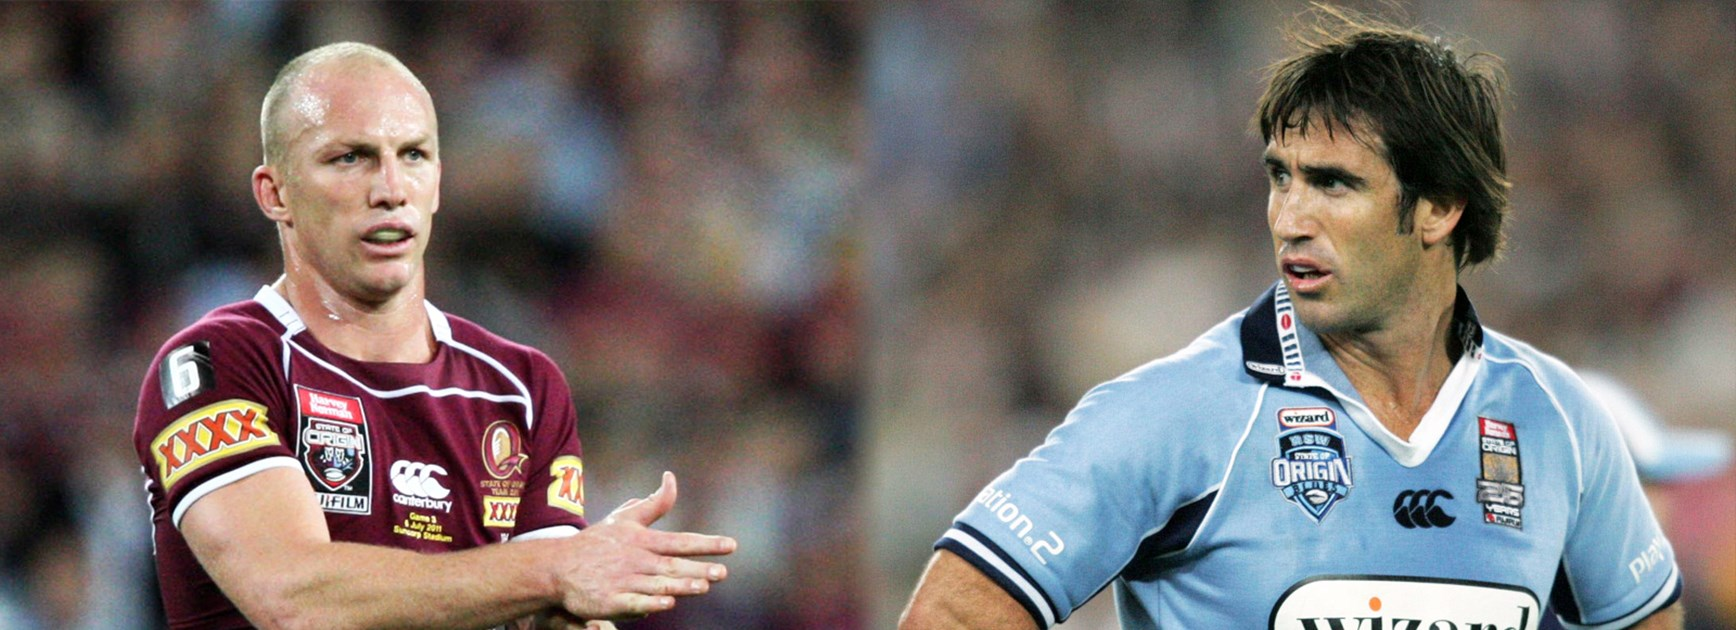 Darren Lockyer v Andrew Johns: Who was the best Origin player since 2000?